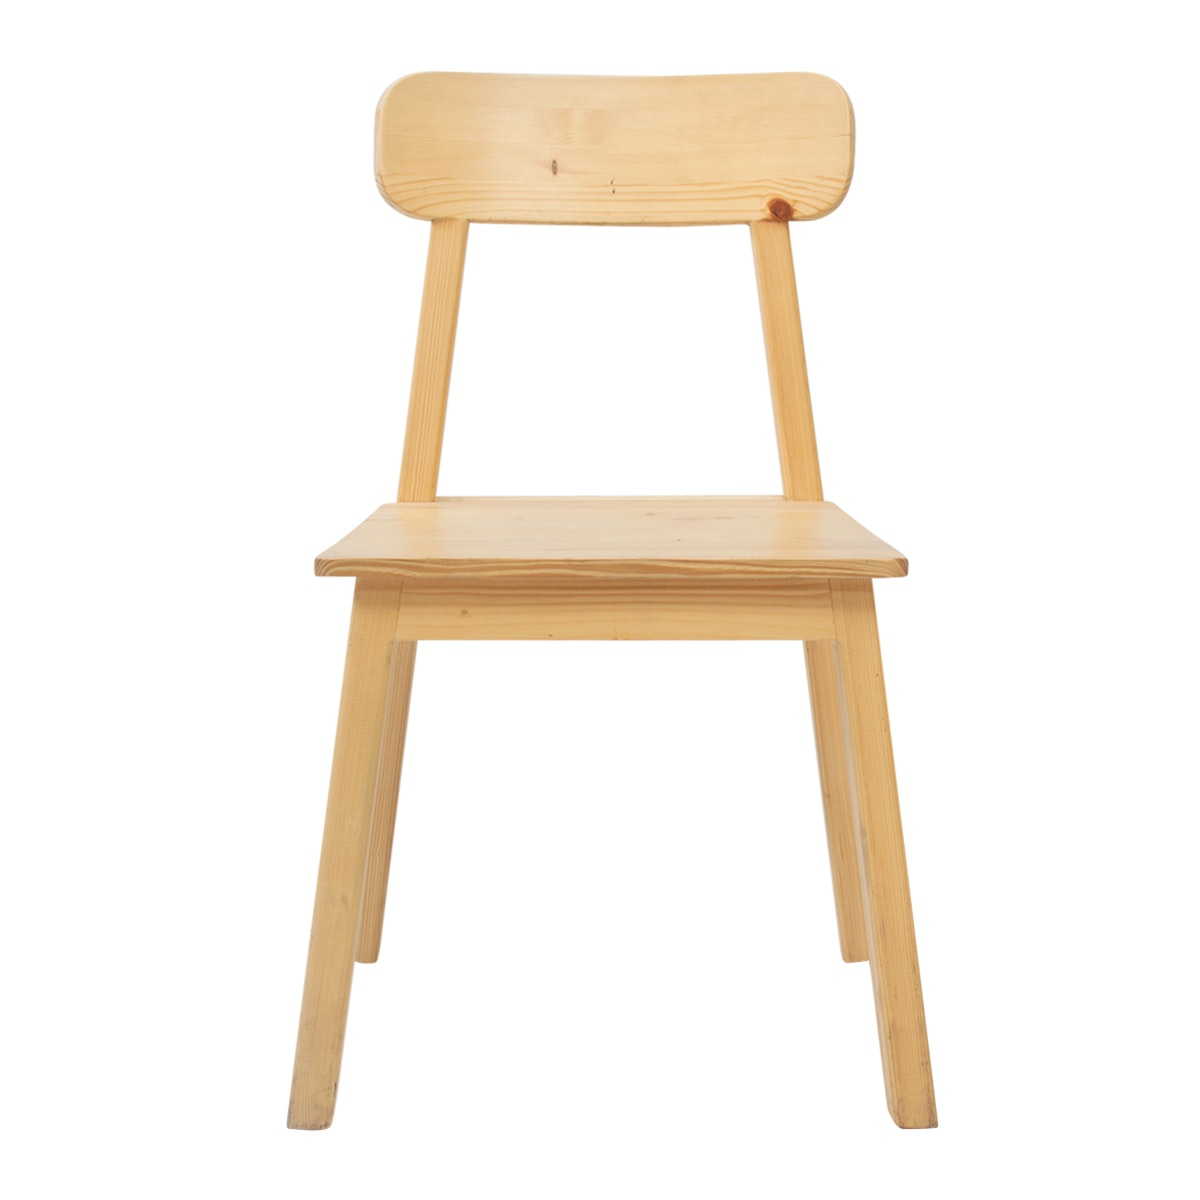 Kreakita KK 031 Dining Chair